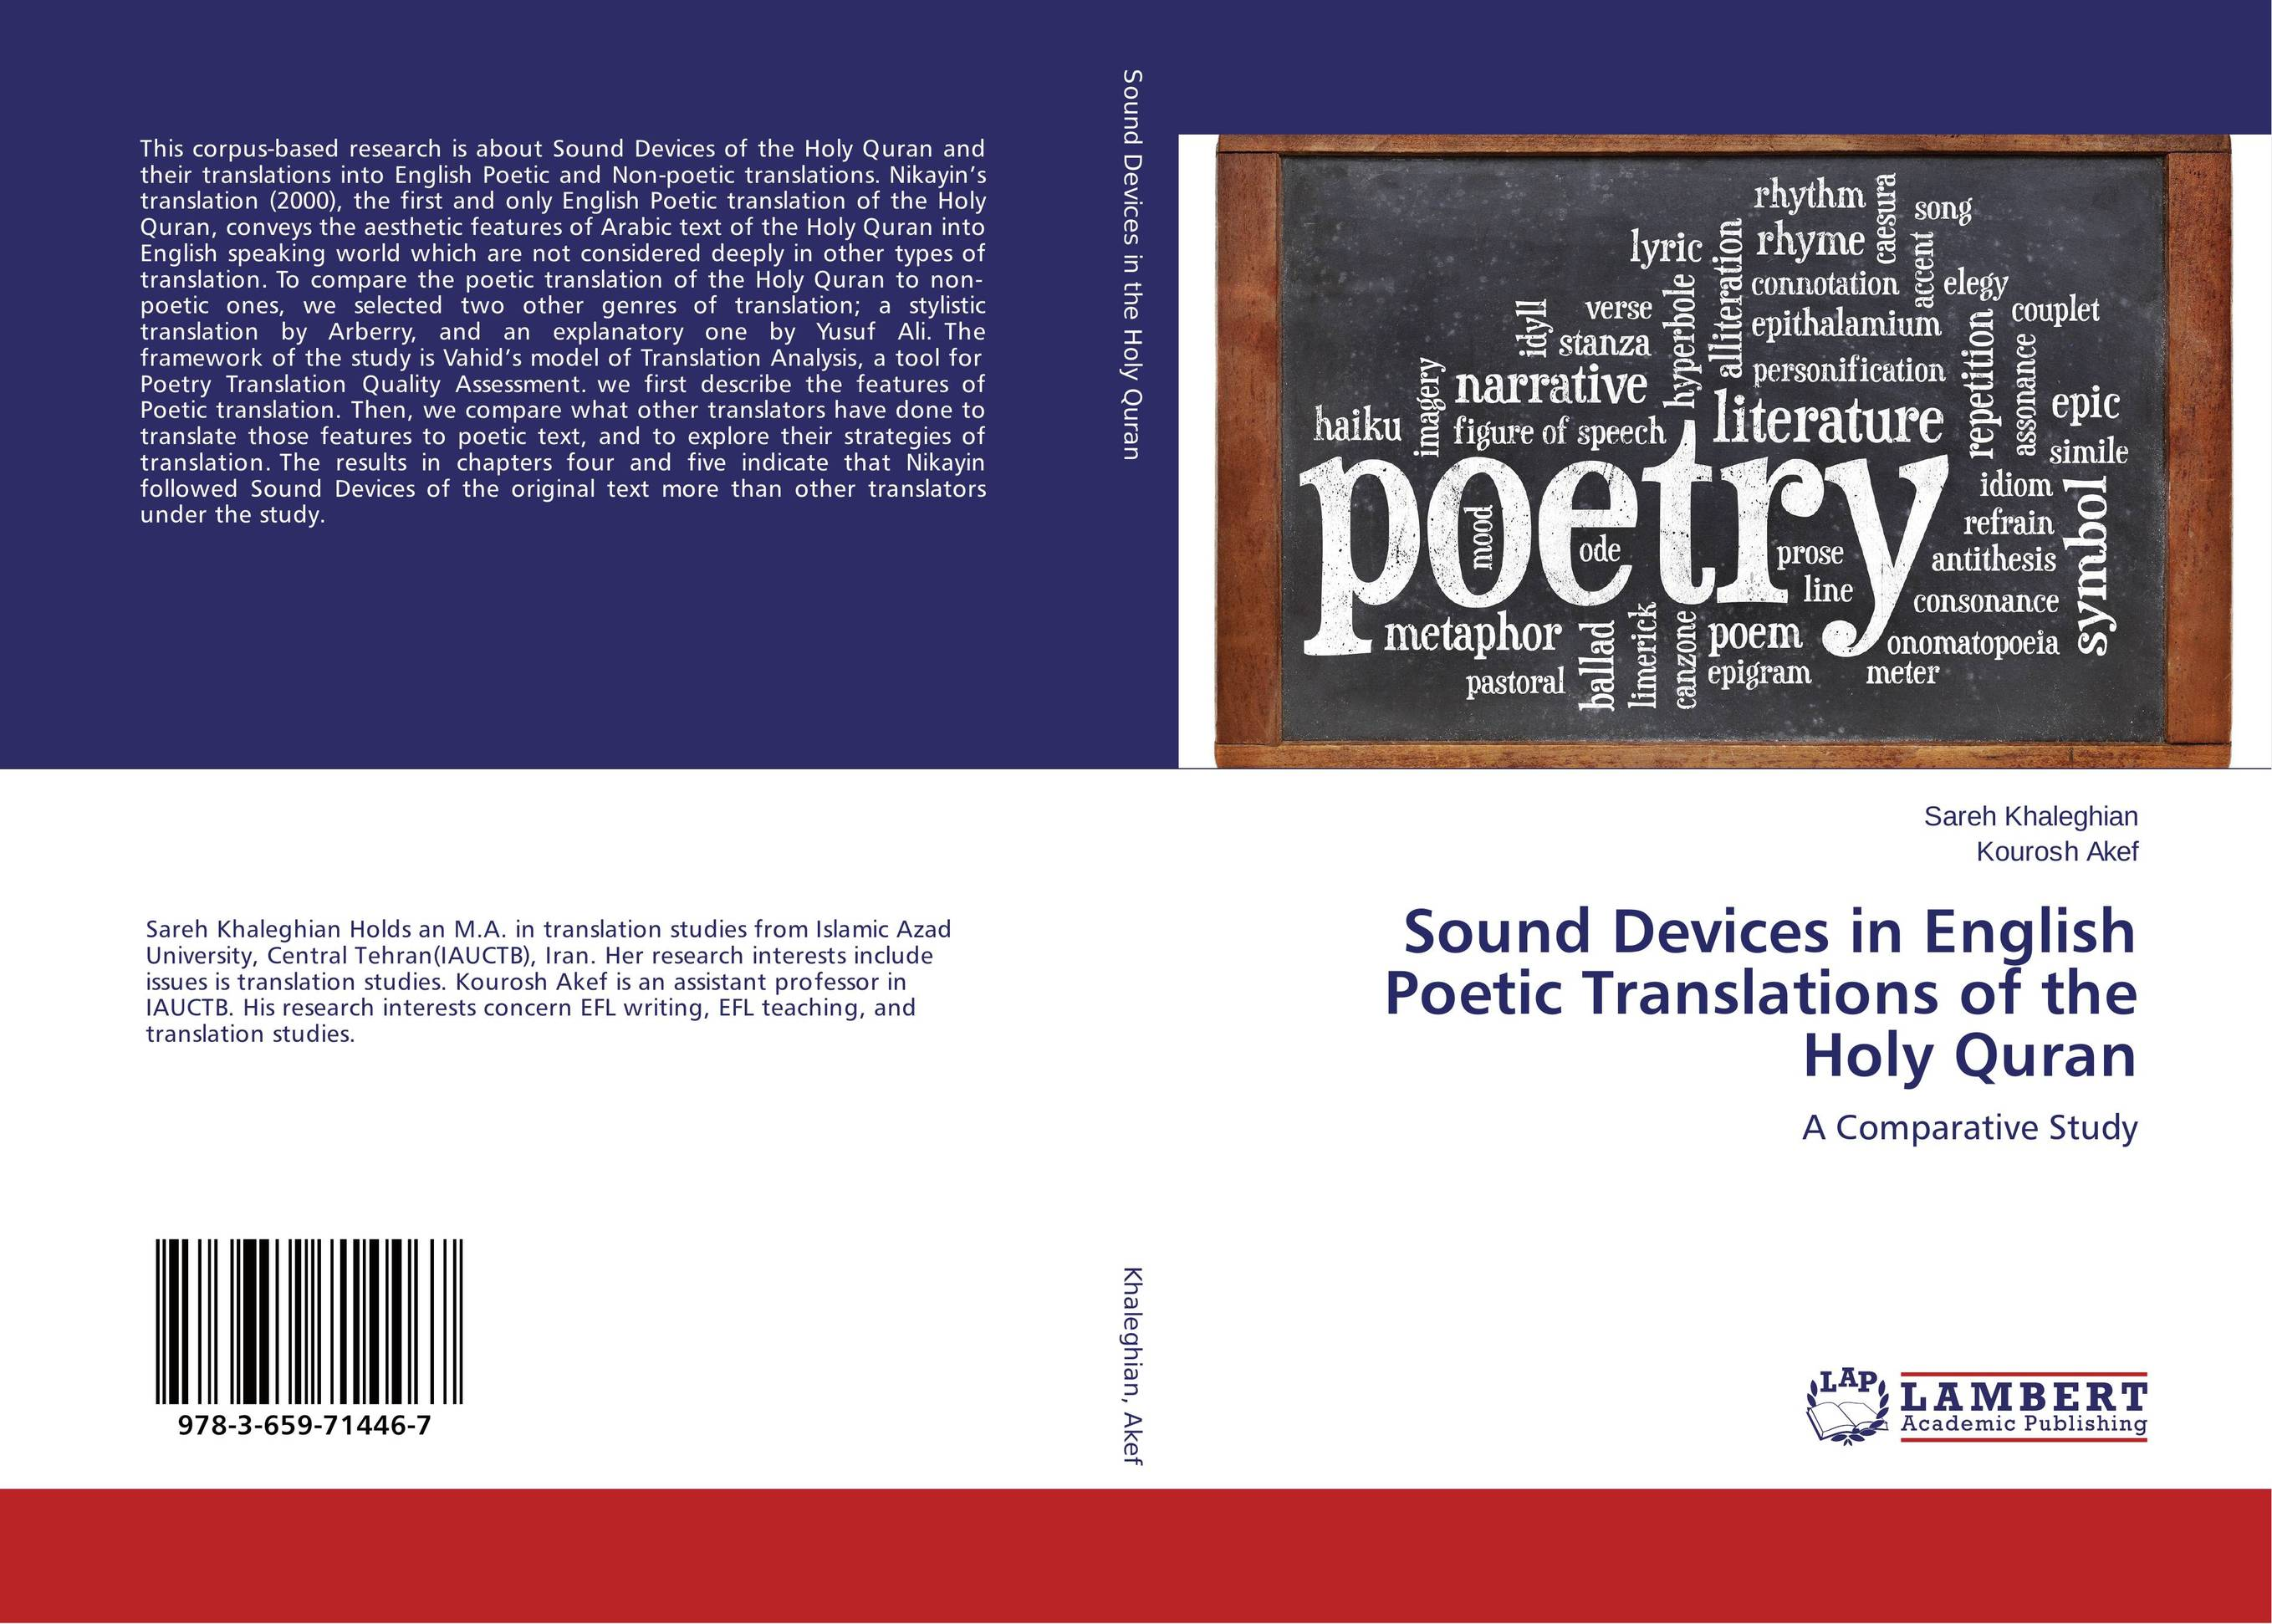 Sound Devices in English Poetic Translations of the Holy Quran the handbook of translation and cognition